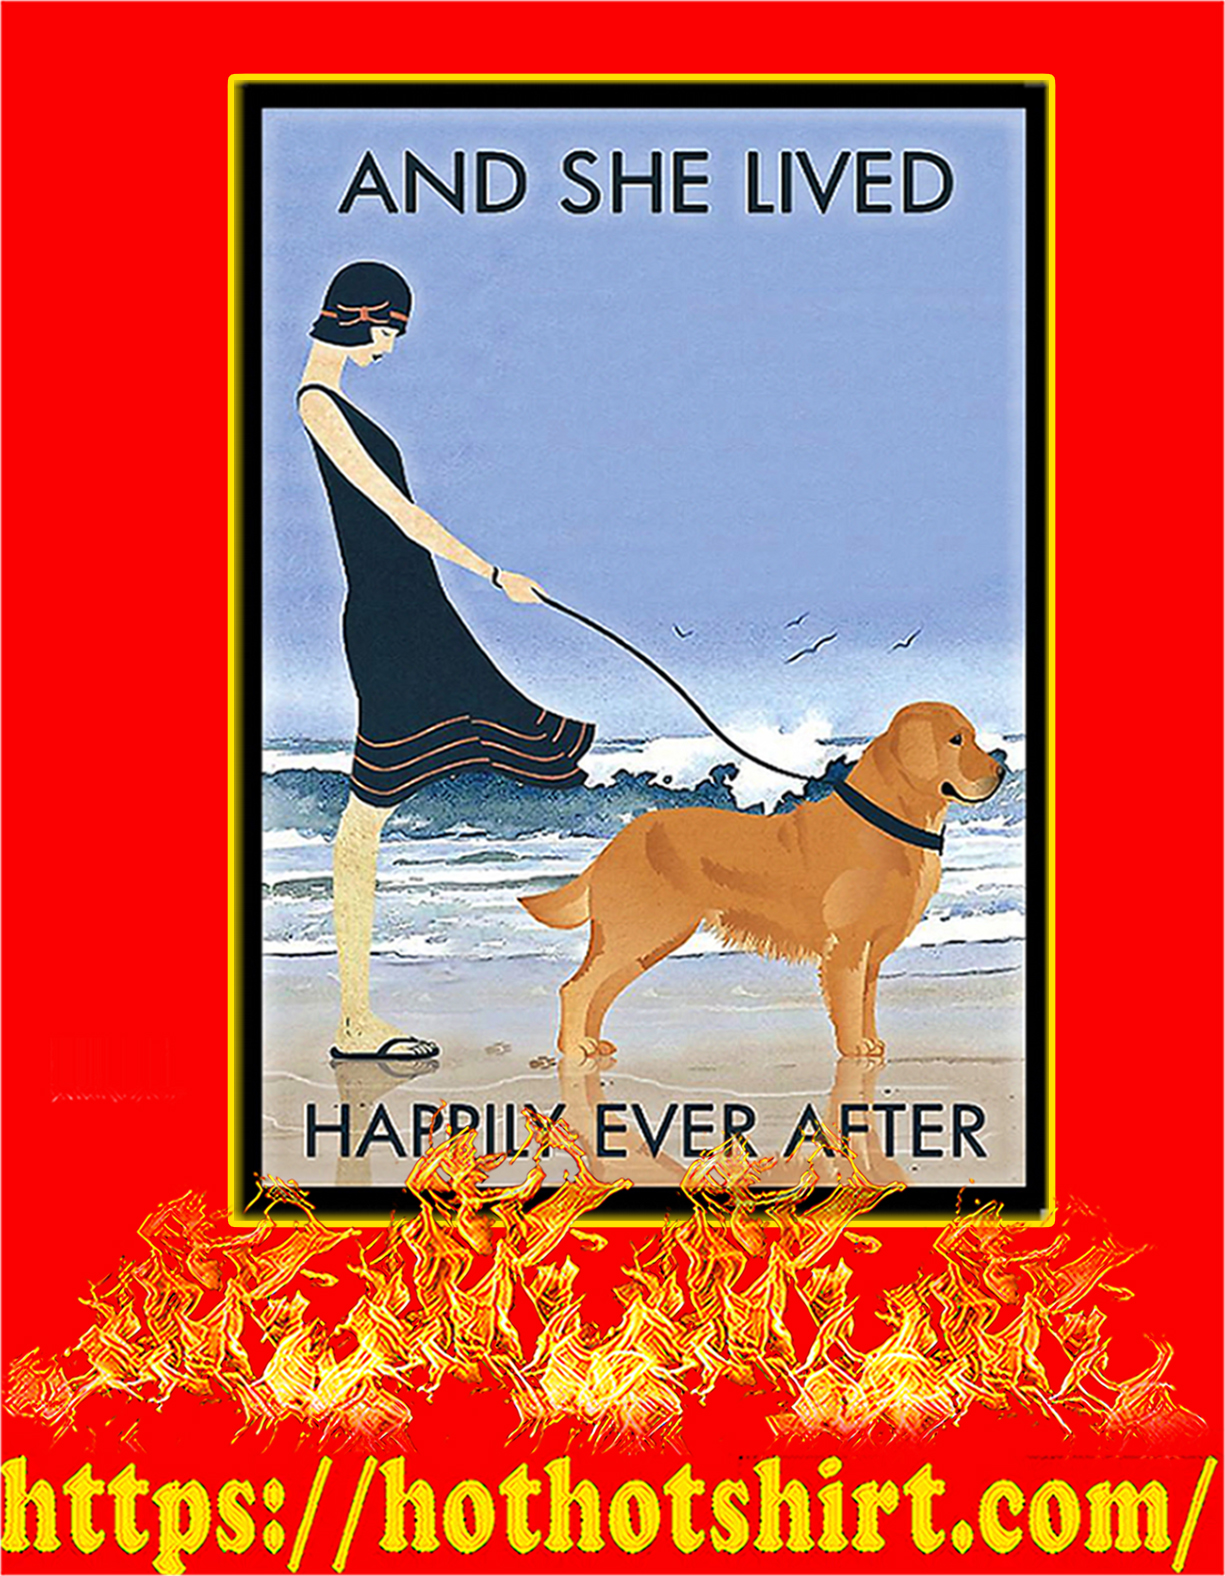 Golden Retriever And she lived happily ever after poster - A4